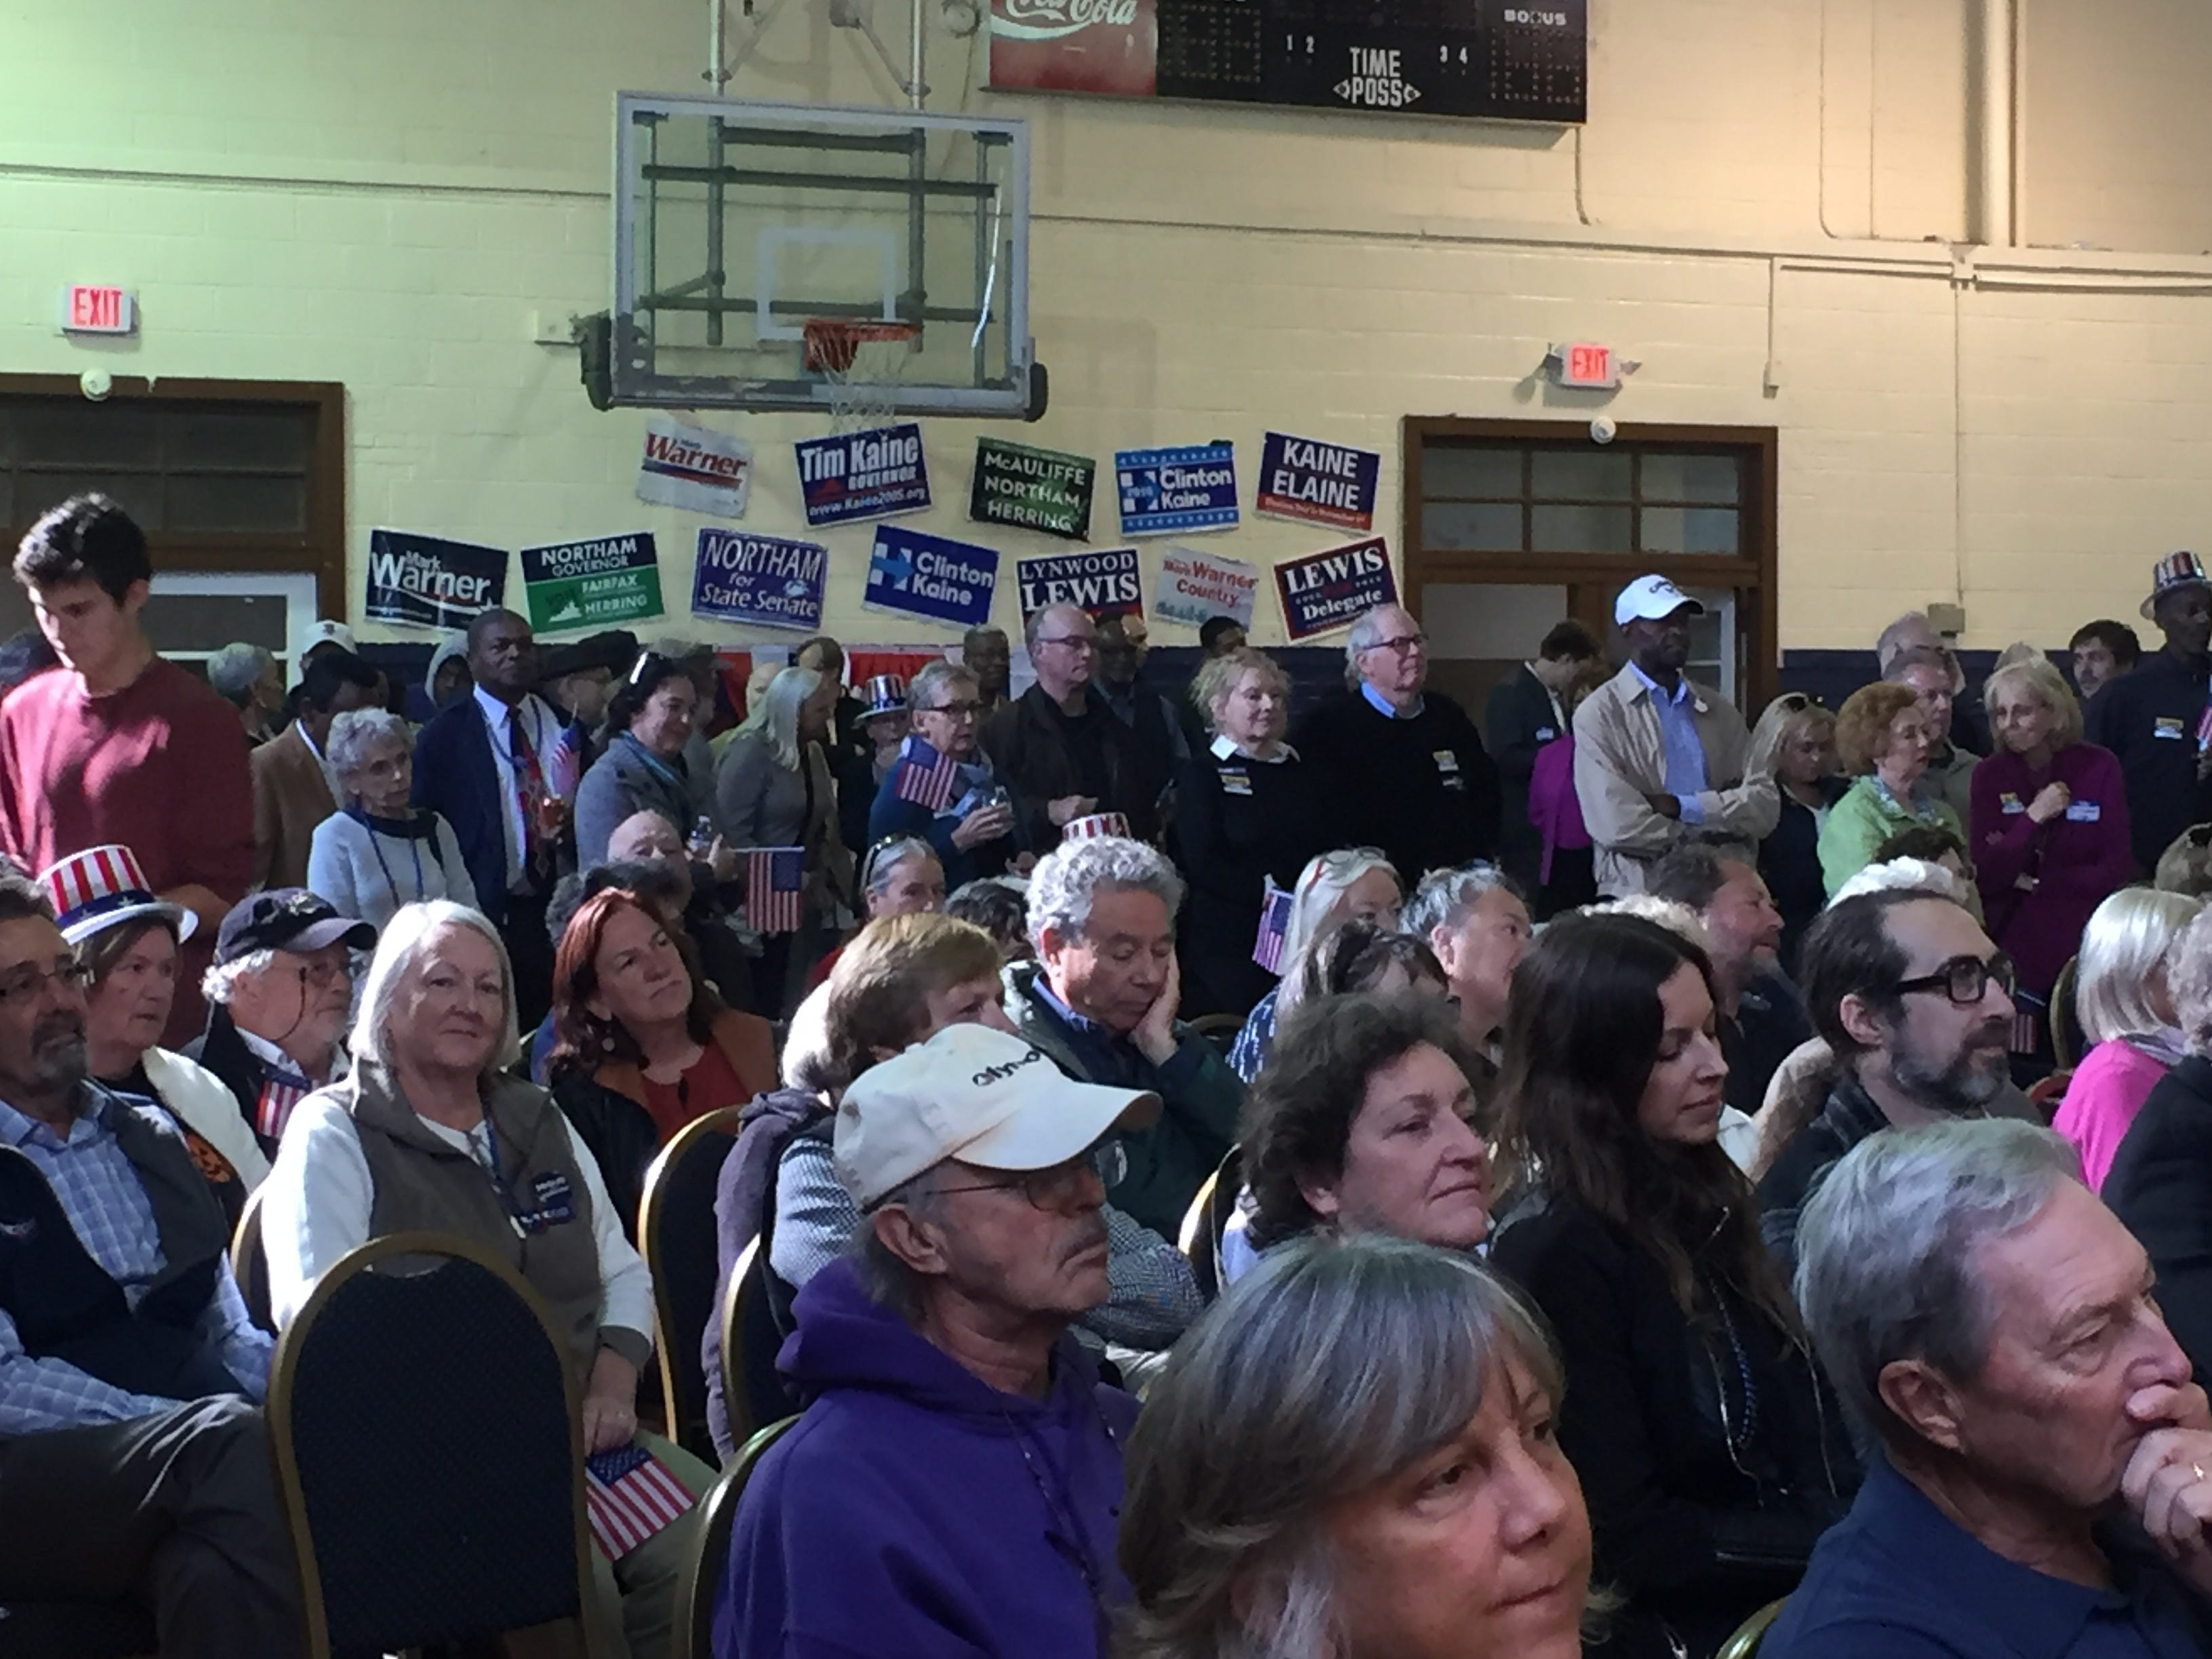 A big crowd turned out Oct. 21 at Mary N. Smith Cultural Enrichment Center in Accomac for a rally by Democratic candidates ahead of the November election.